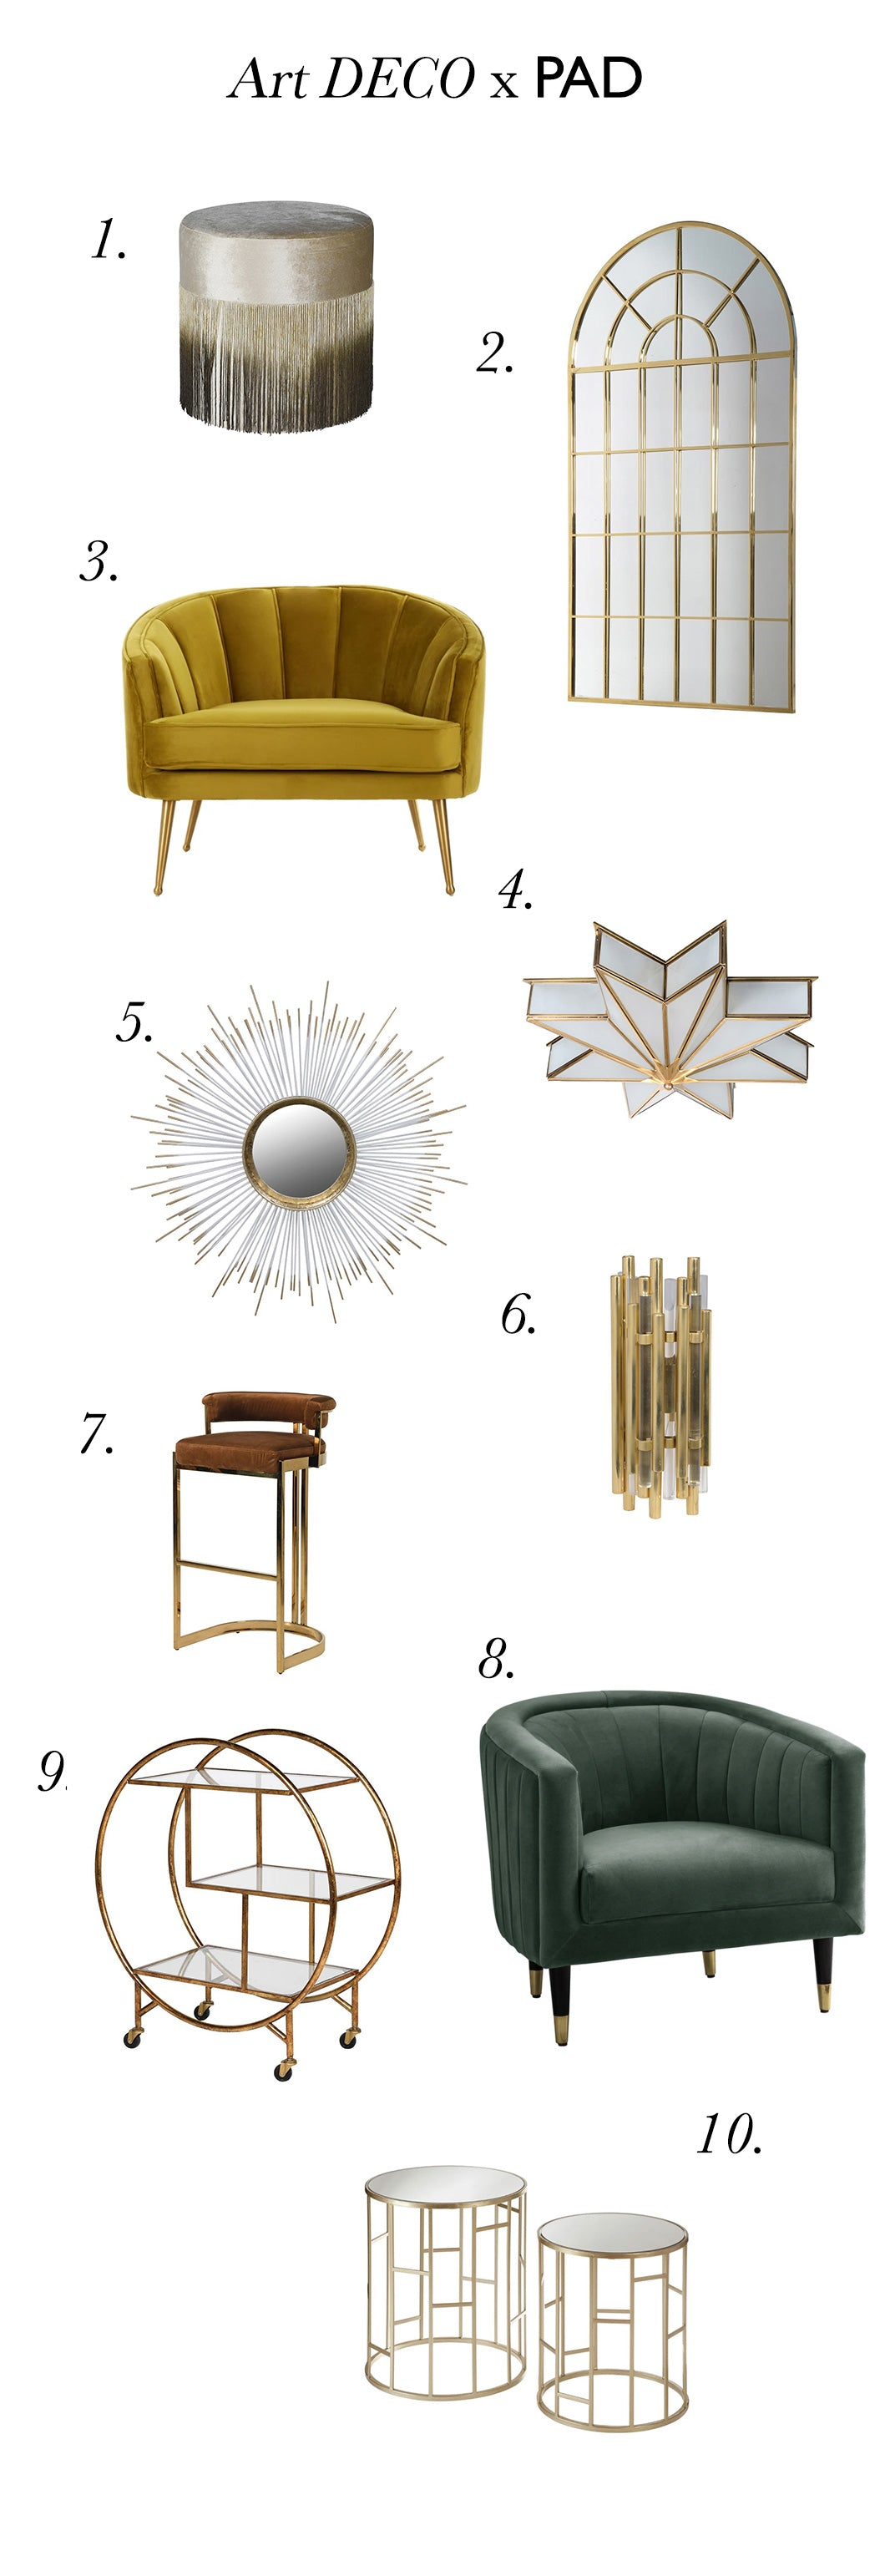 2020 Trend Report Interiors Art Deco